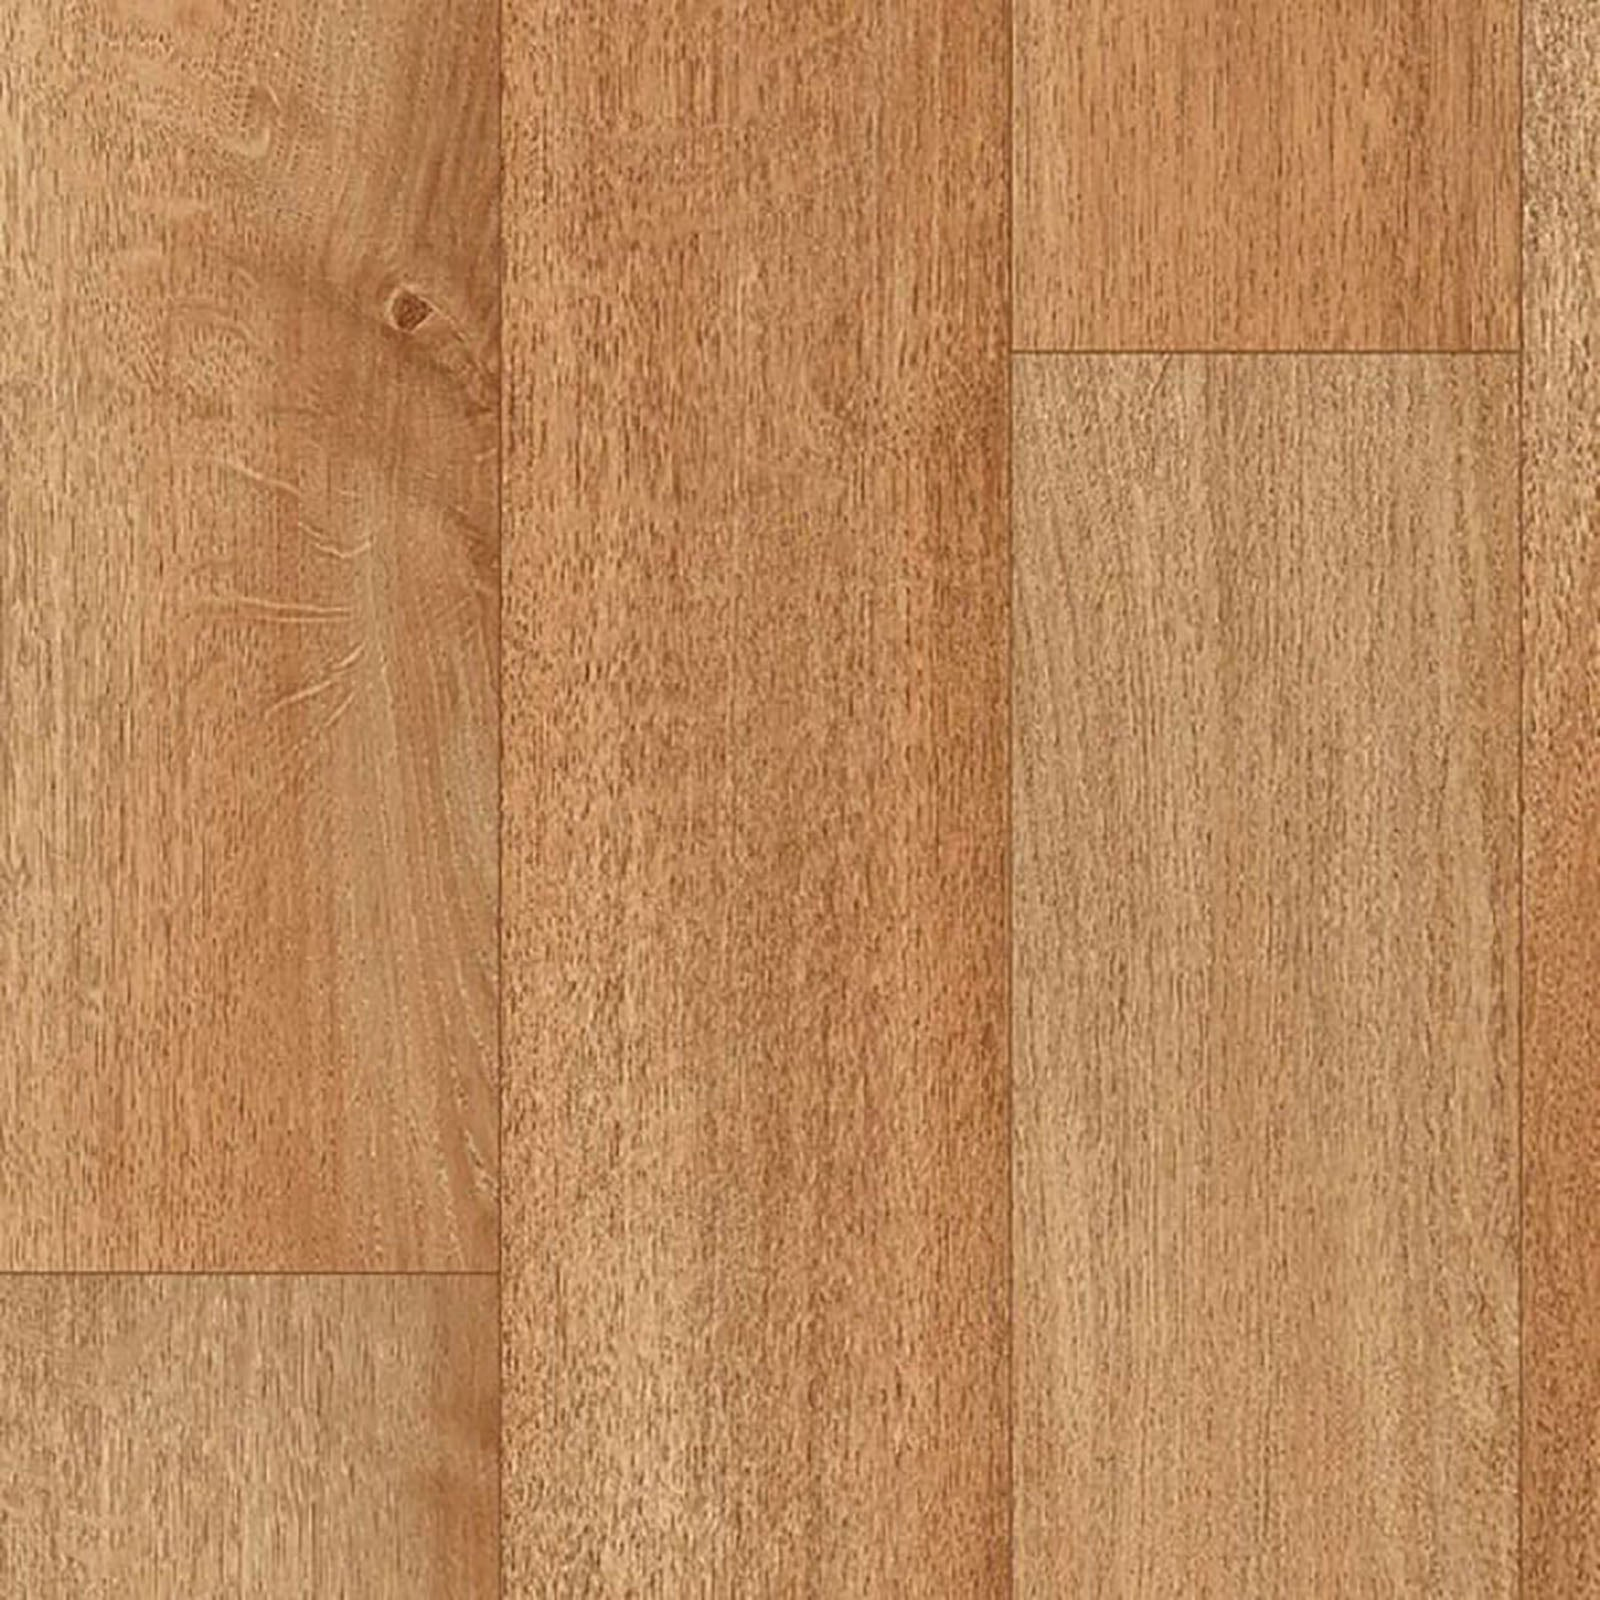 Dark Beige Oak Authentic 261 Wood Vinyl Flooring - Far